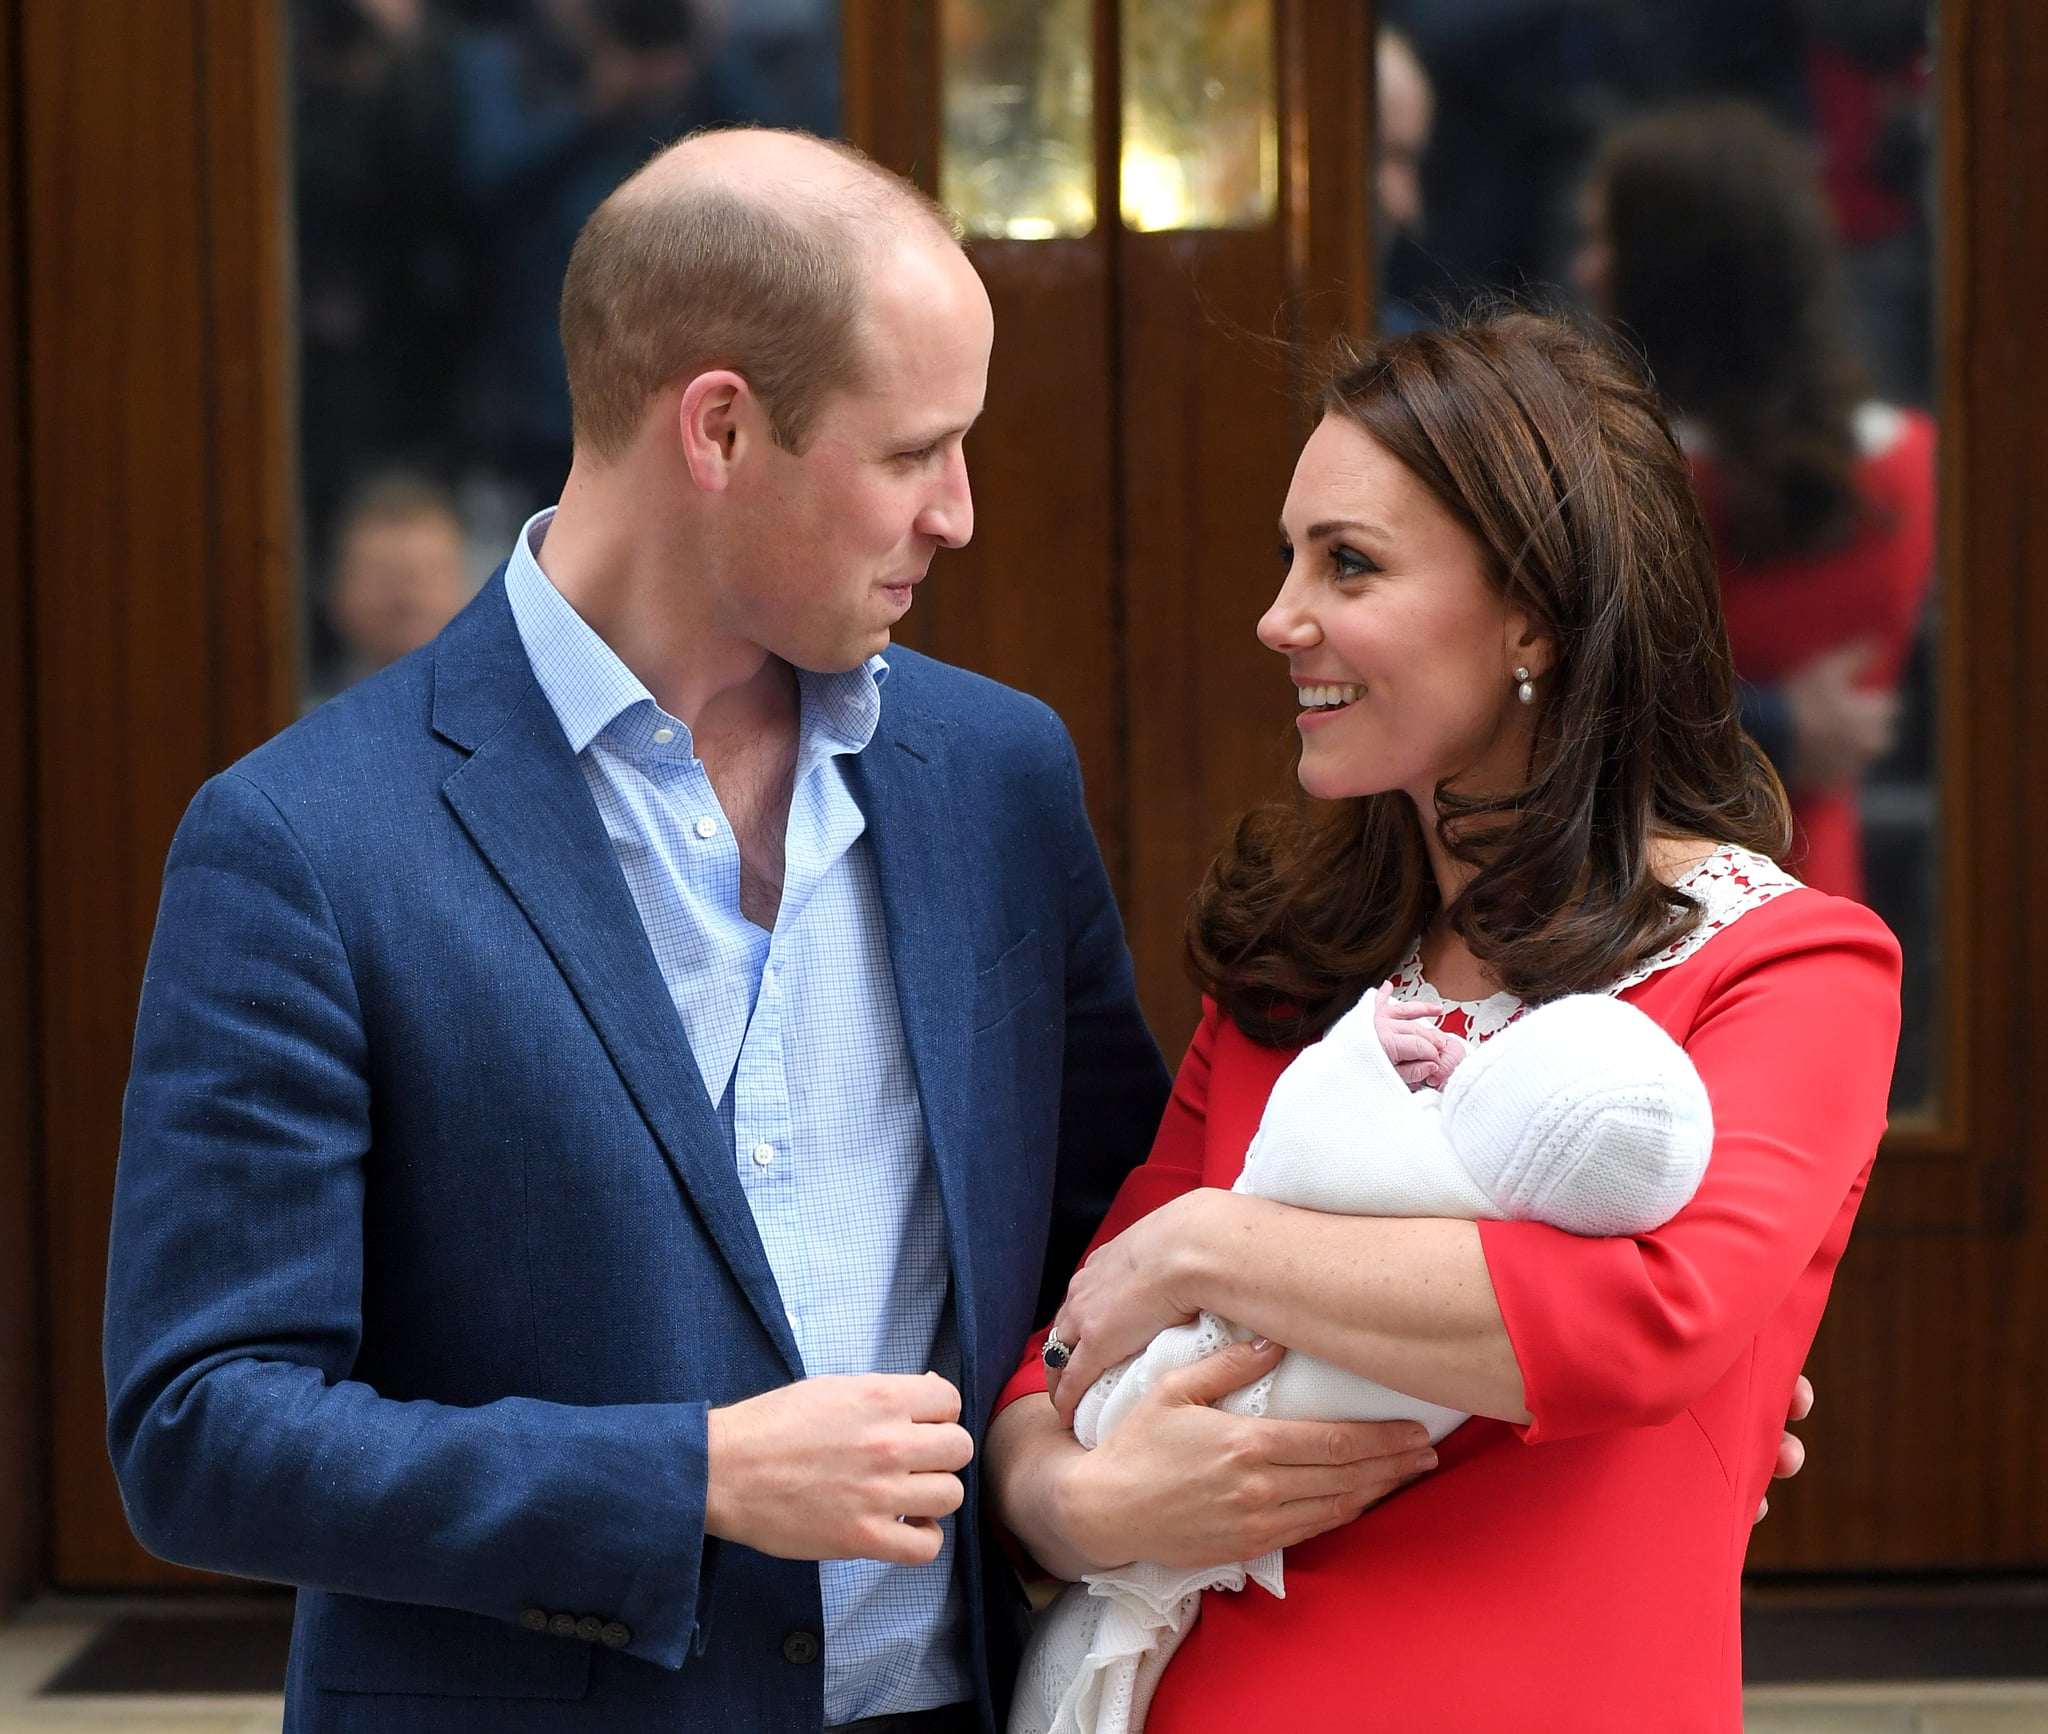 LONDON, ENGLAND - APRIL 23:  Catherine, Duchess of Cambridge and Prince William, Duke of Cambridge depart the Lindo Wing with their newborn son at St Mary's Hospital on April 23, 2018 in London, England. The Duchess safely delivered a boy at 11:01 am, weighing 8lbs 7oz, who will be fifth in line to the throne.  (Photo by Karwai Tang/WireImage)